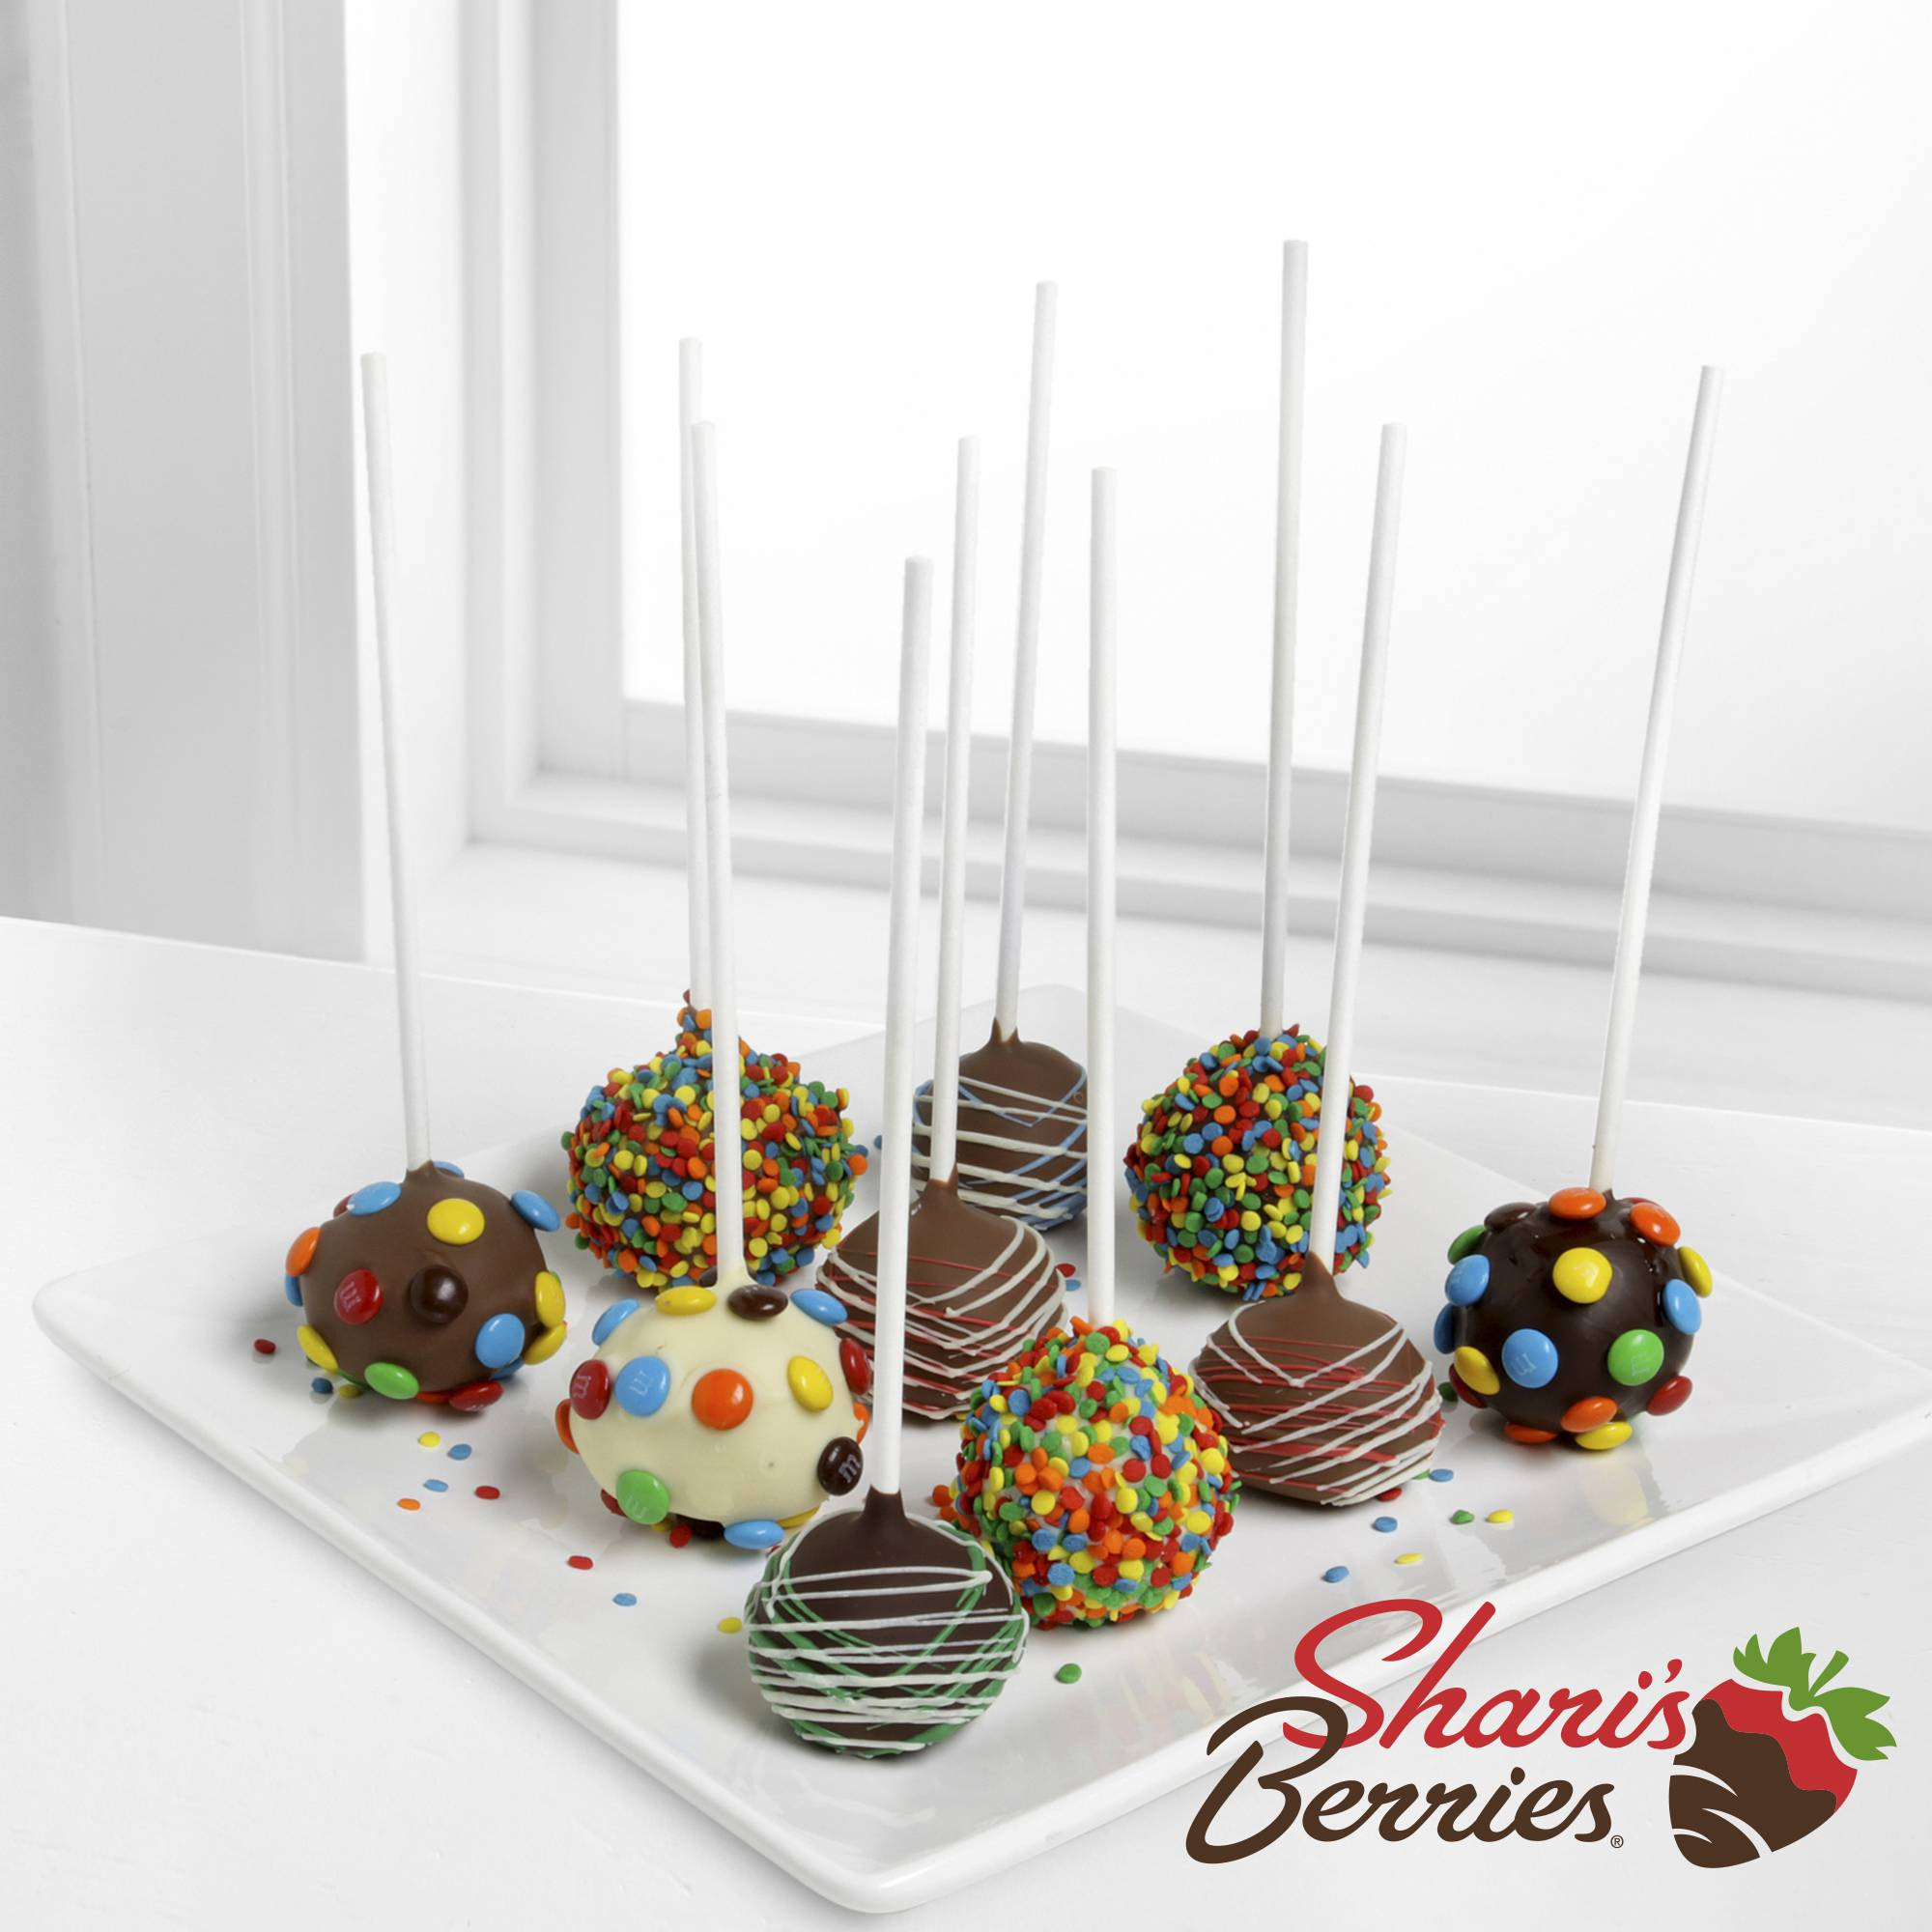 Shari's Berries™ Limited Edition Chocolate Dipped Birthday Celebration Cake Pops-10-piece